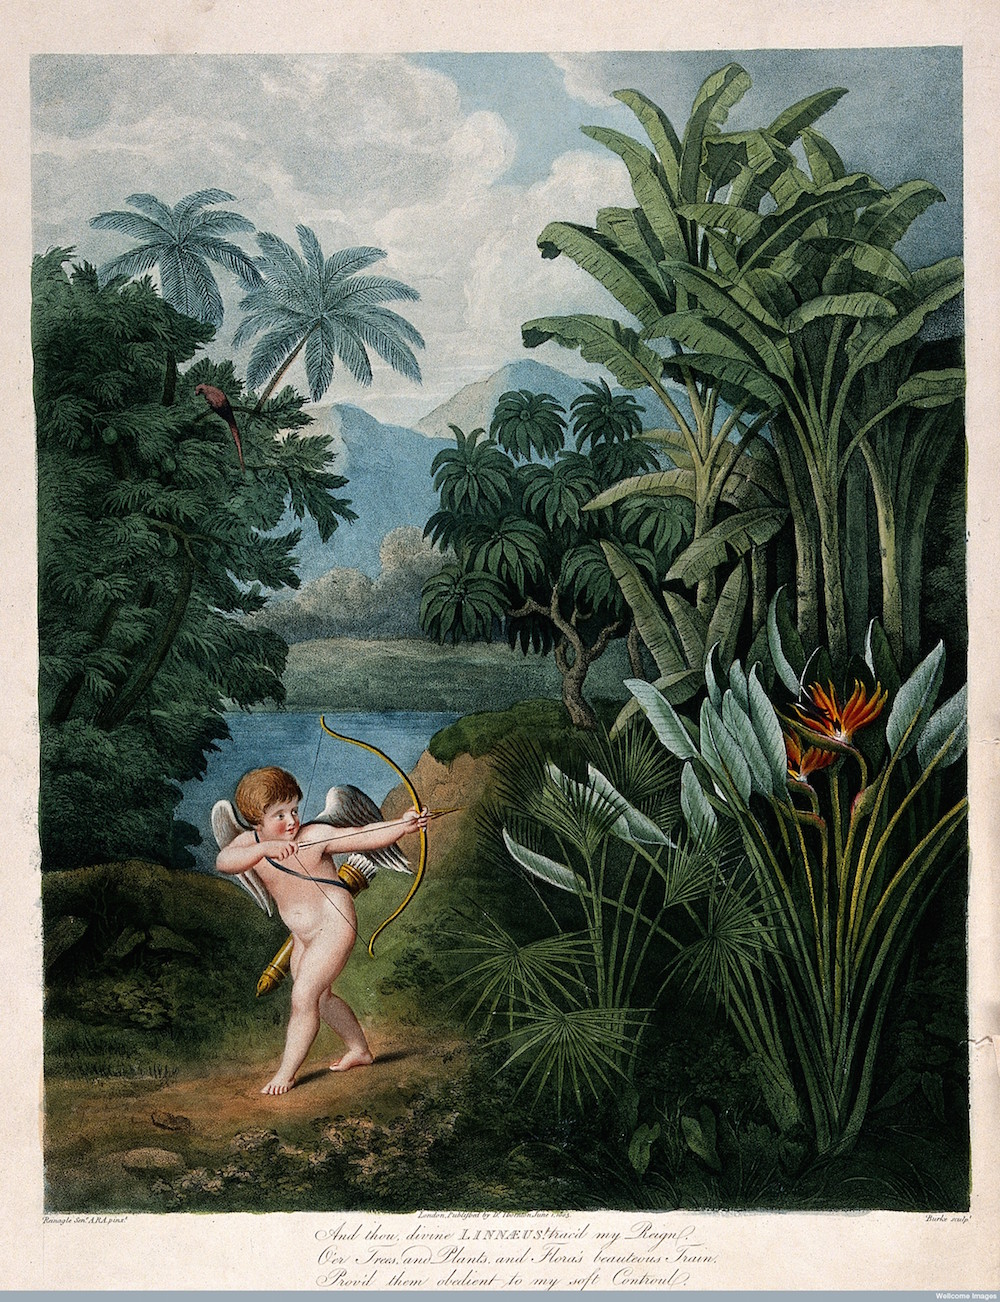 V0042992 Cupid inspiring plants with Love, in a tropical landscape. C